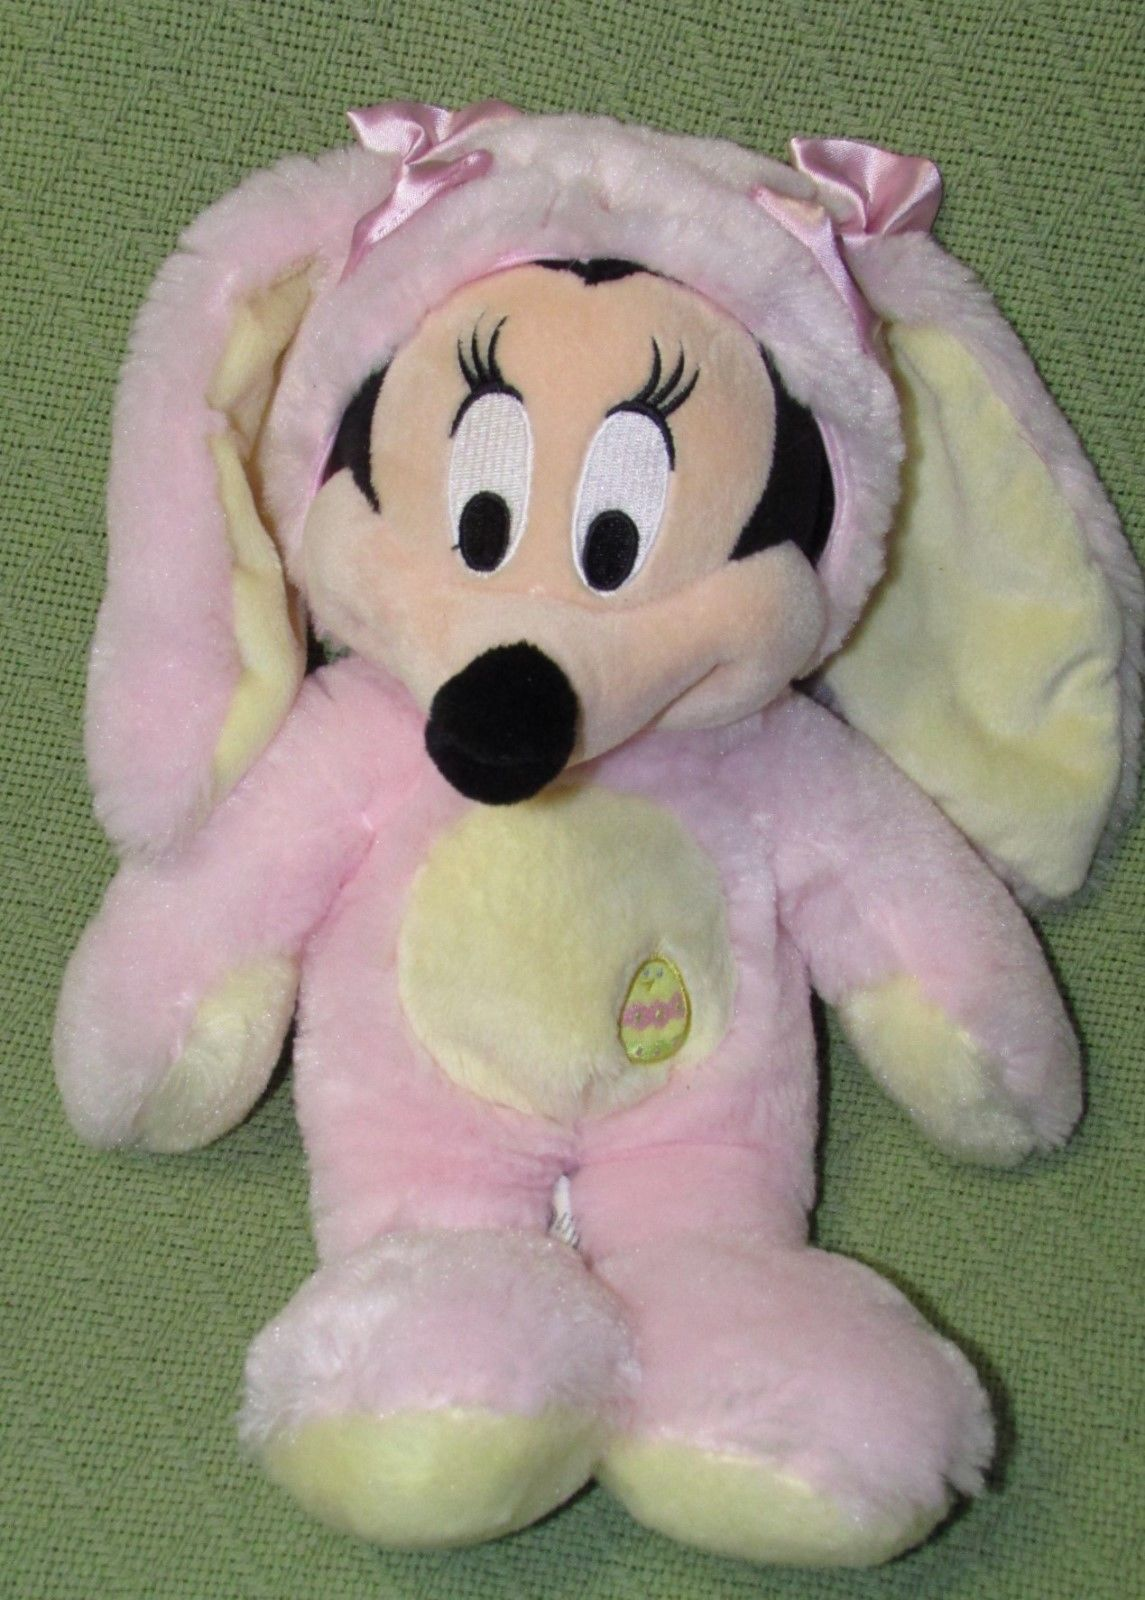 DISNEY STORE BABY Pink Easter Bunny & Mrs. Santa Claus Minnie Mouse Plush Dolls image 2